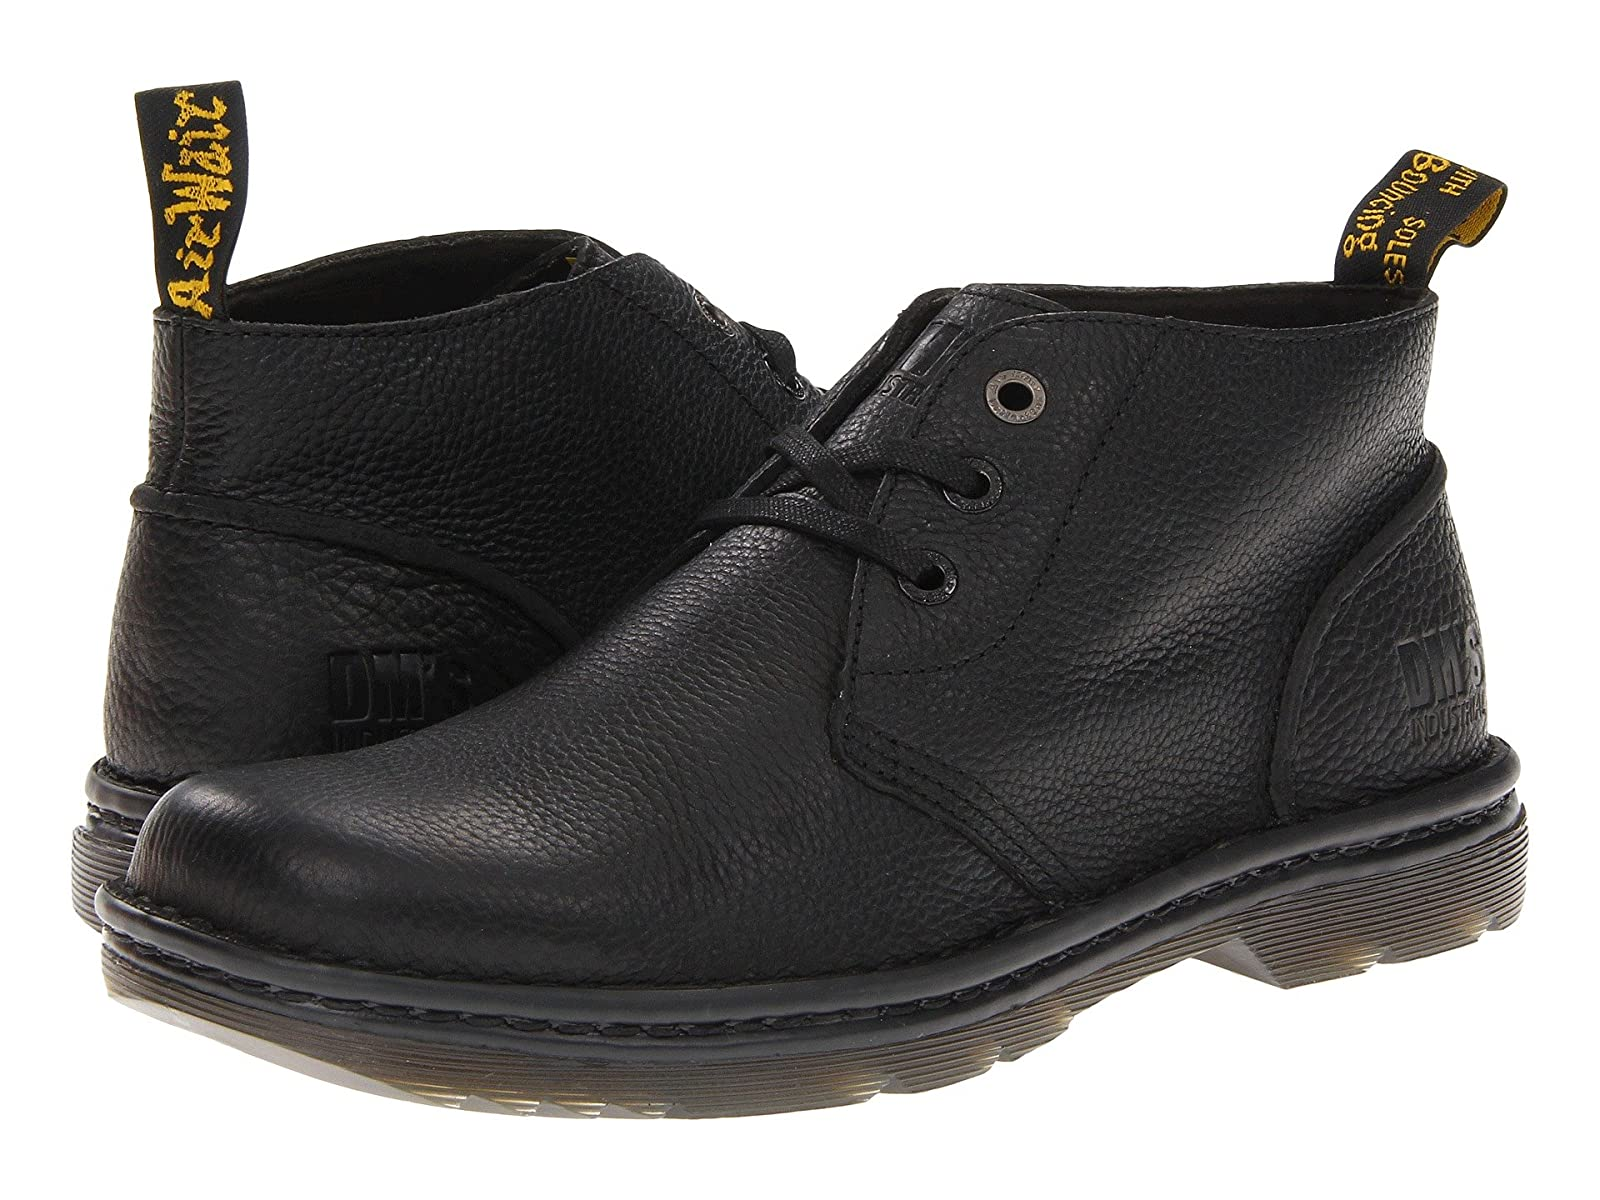 Dr. Martens Work SussexAffordable and distinctive shoes